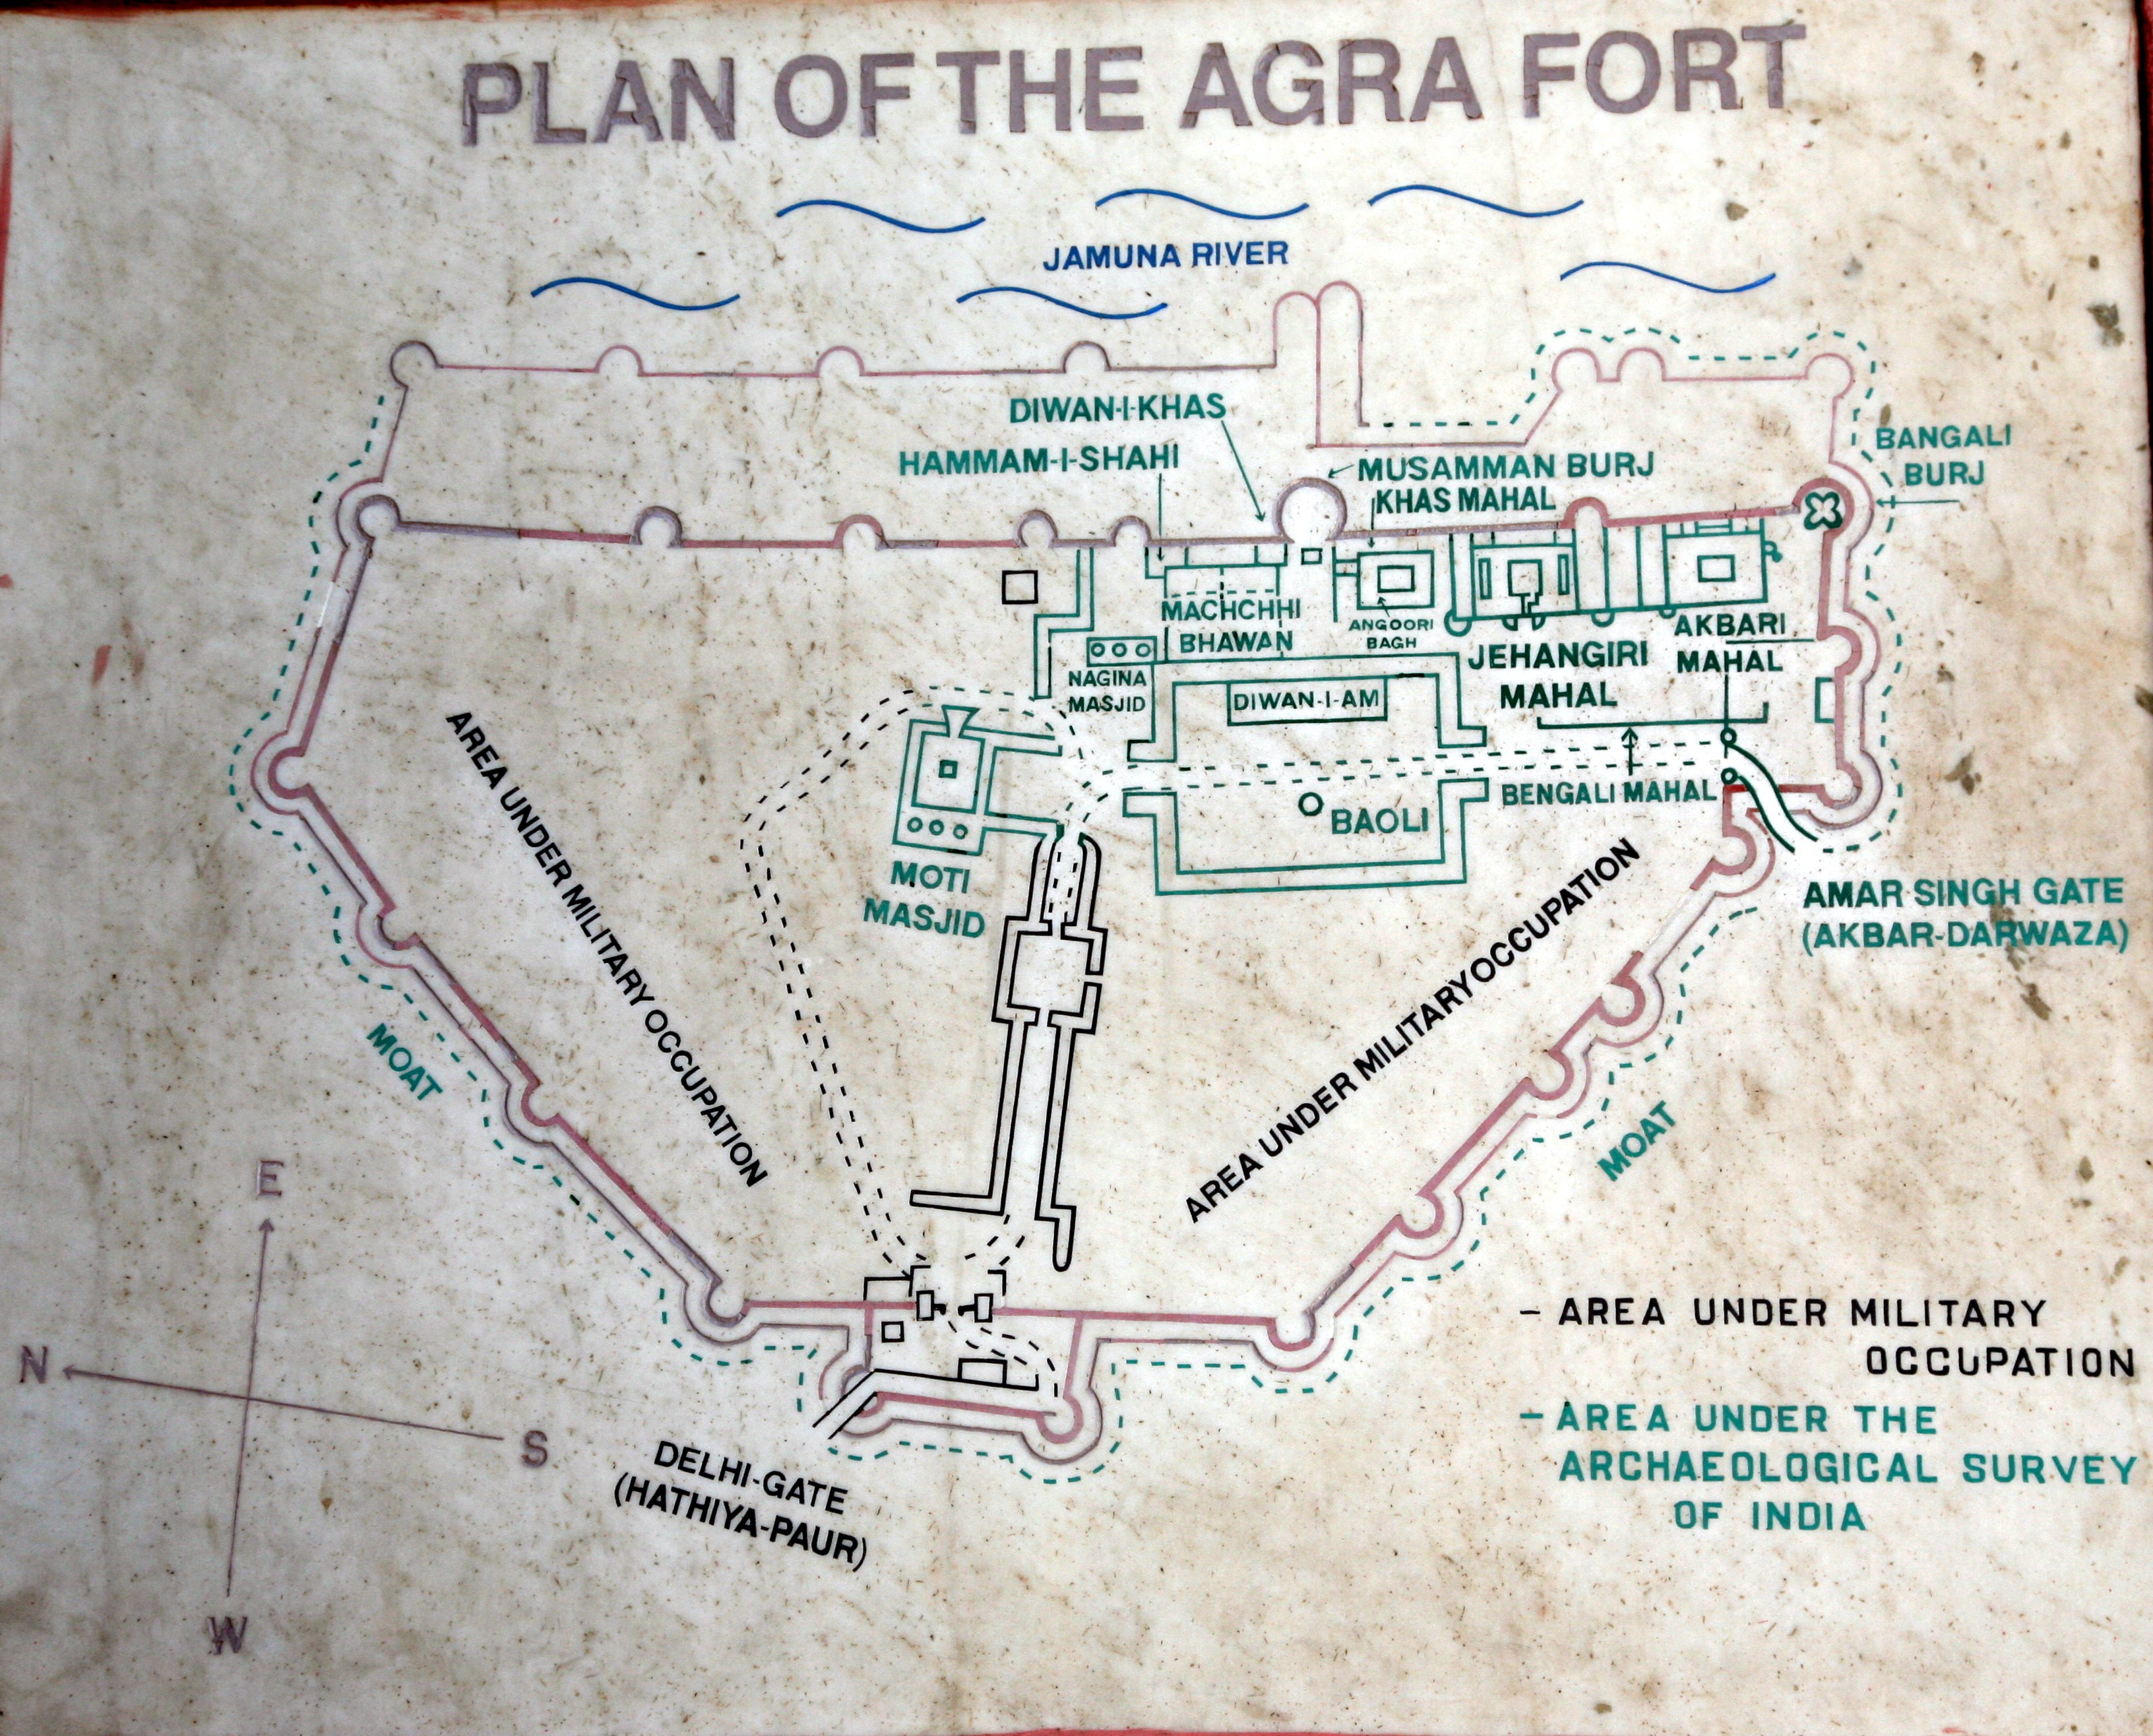 Plan of Agra Fort